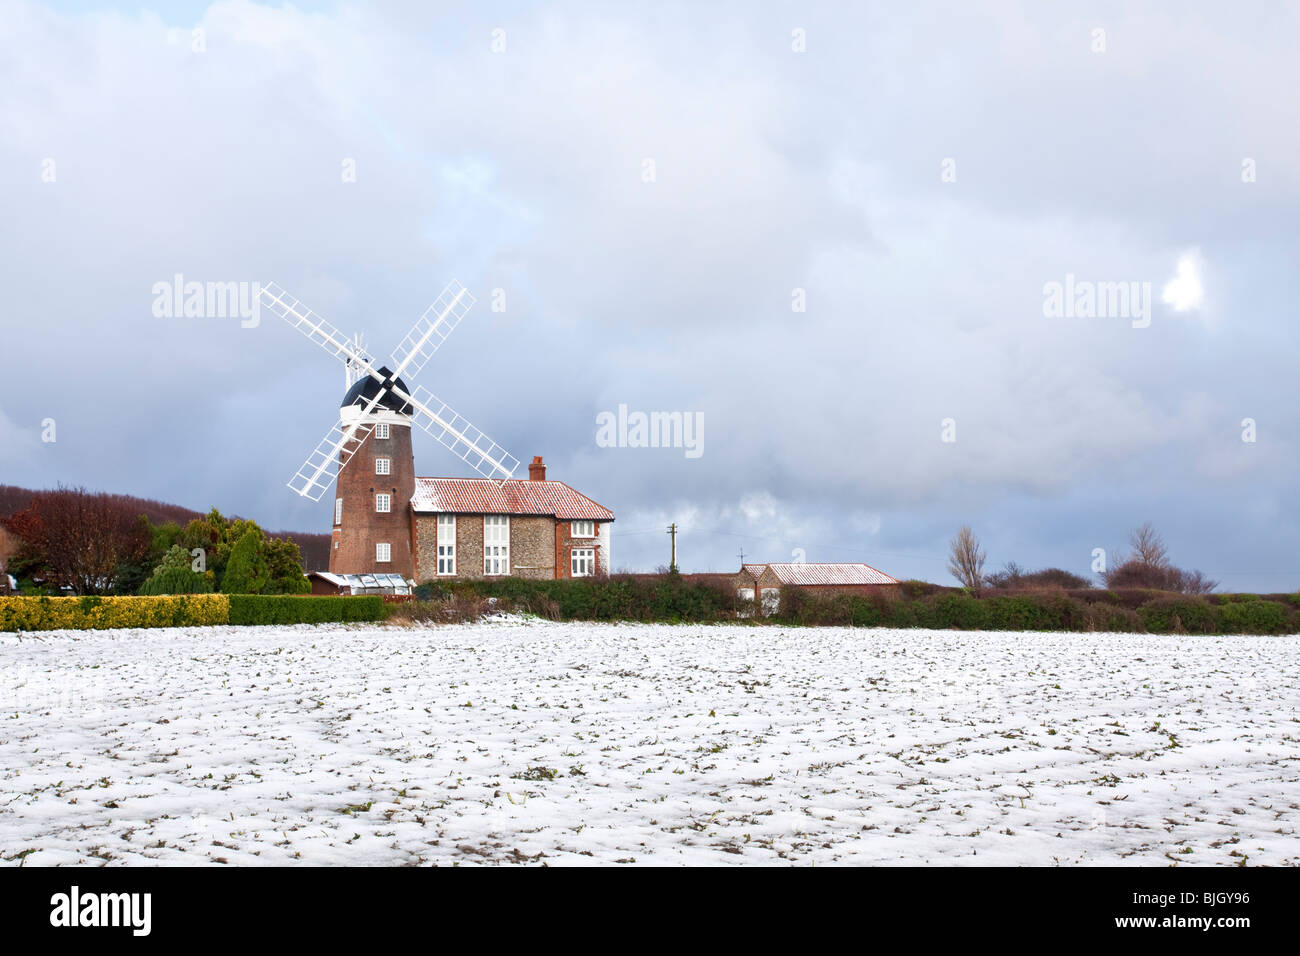 Weybourne windmill in Norfolk following winter snow showers - Stock Image